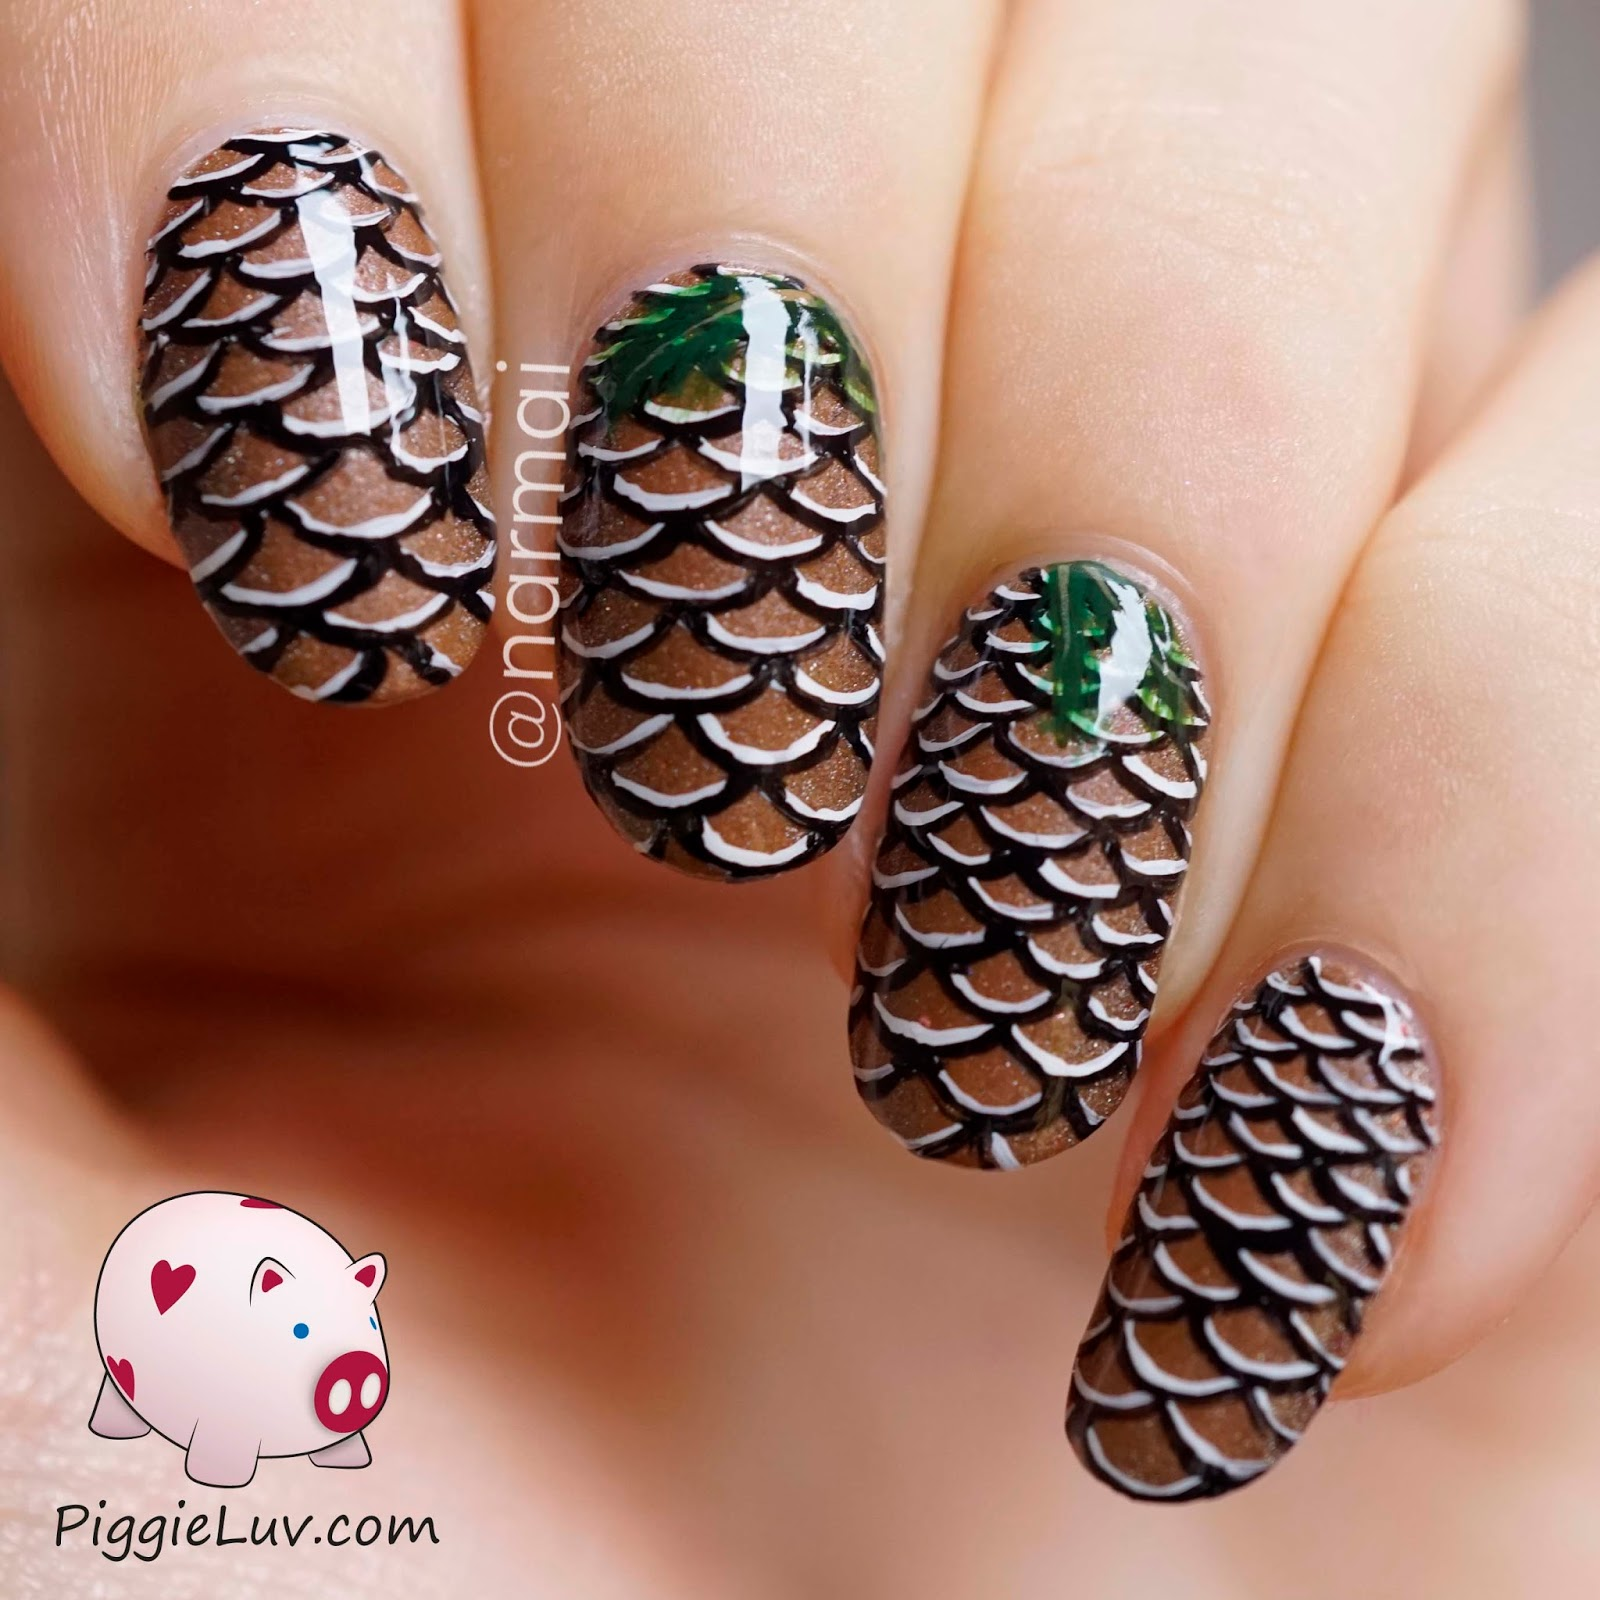 PiggieLuv: Pine cone nail art + video tutorial